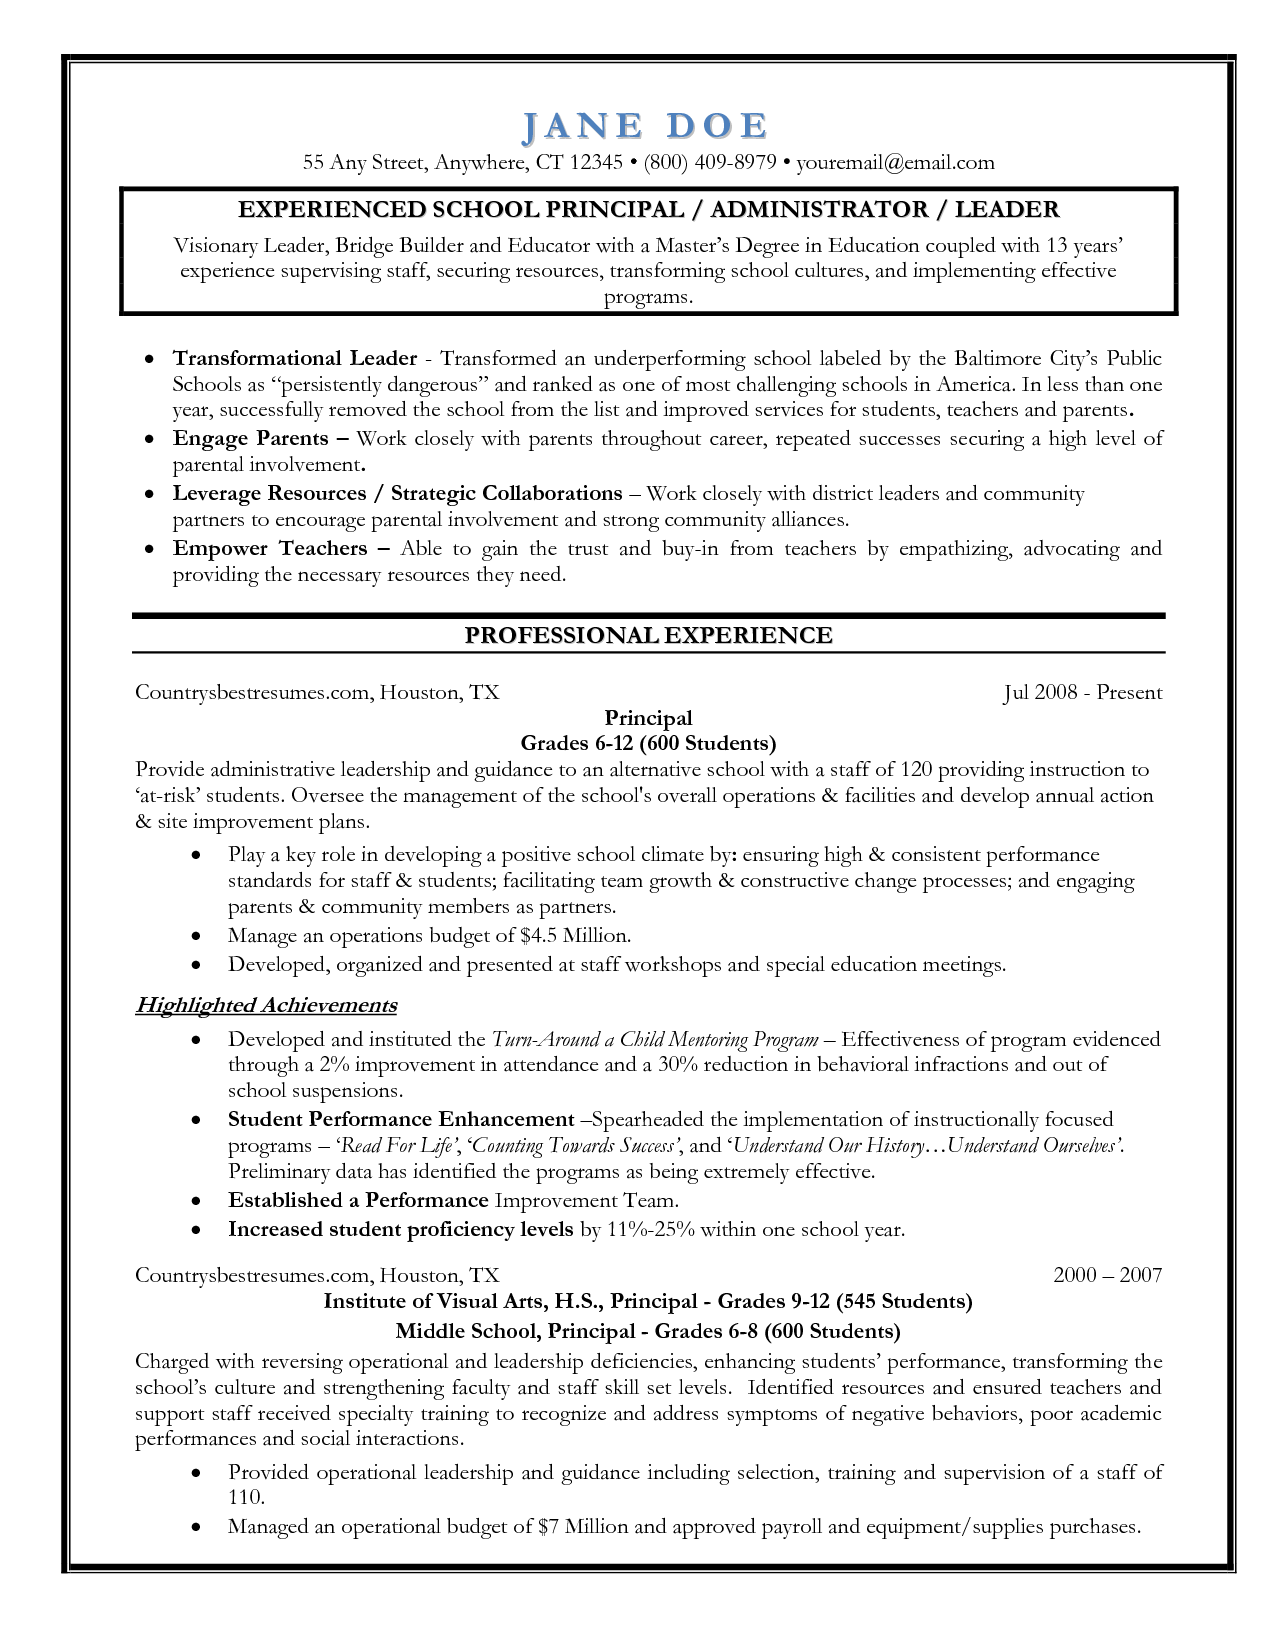 Administrator Resume Sample Adorable Entrylevel Assistant Principal Resume Templates  Senior Educator .